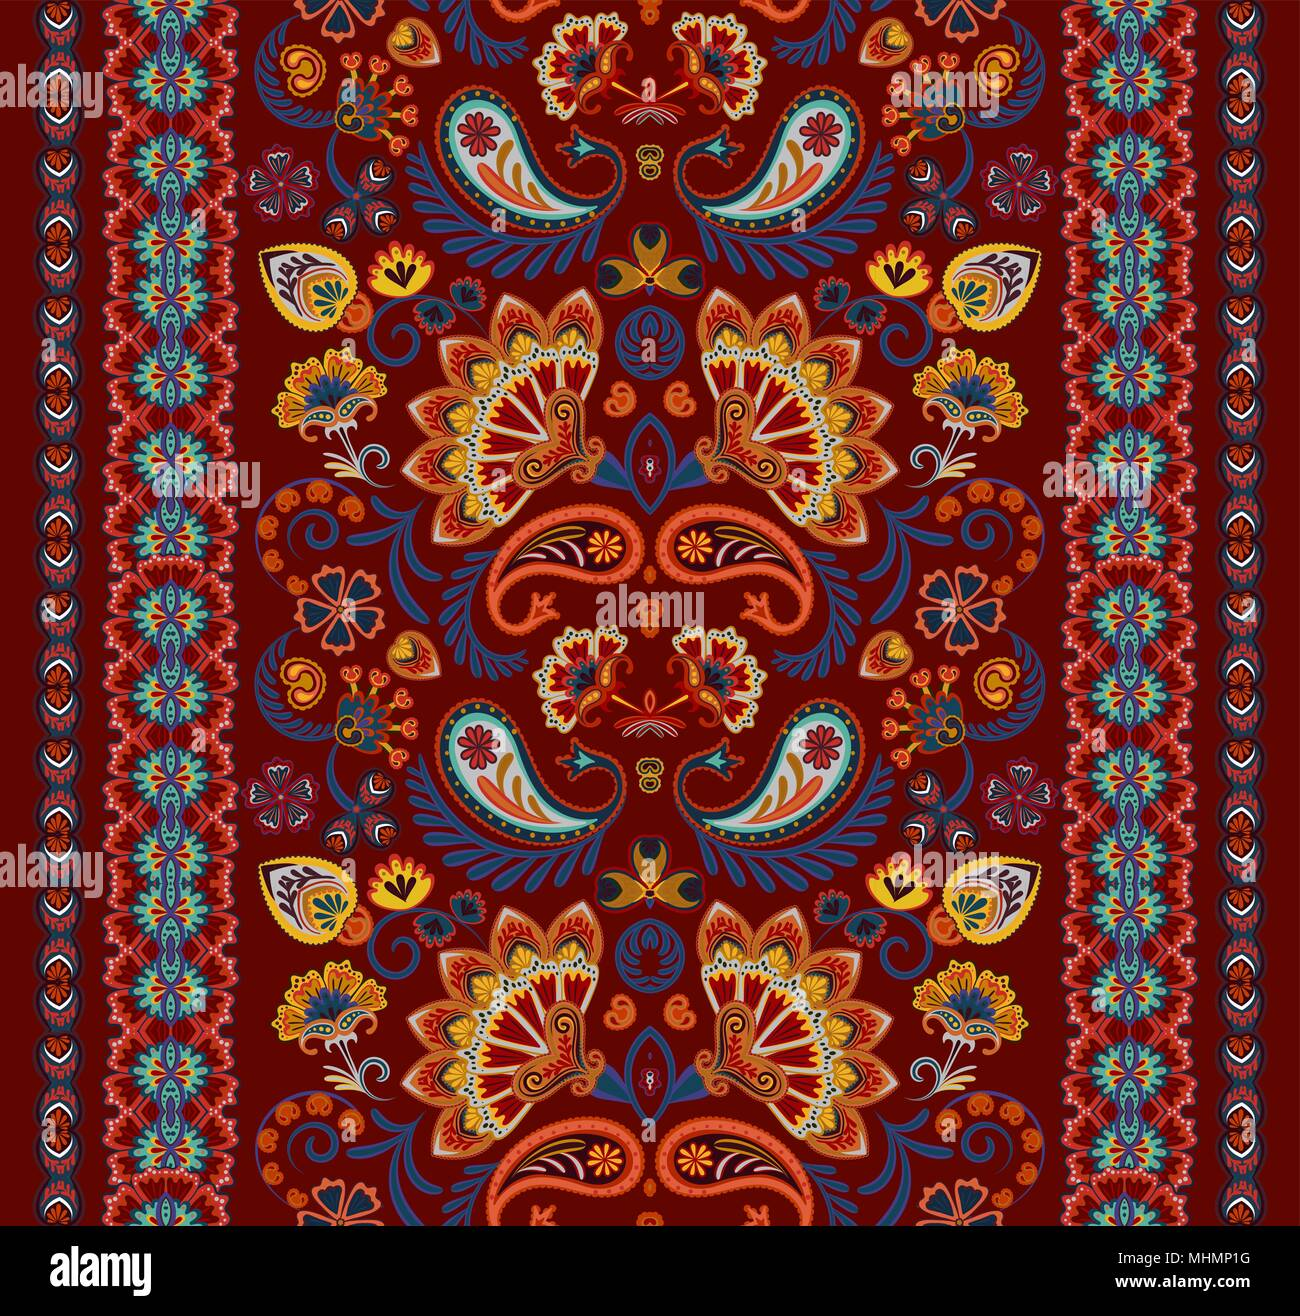 Indian Seamless Pattern Wallpaper With Paisley Ethnic